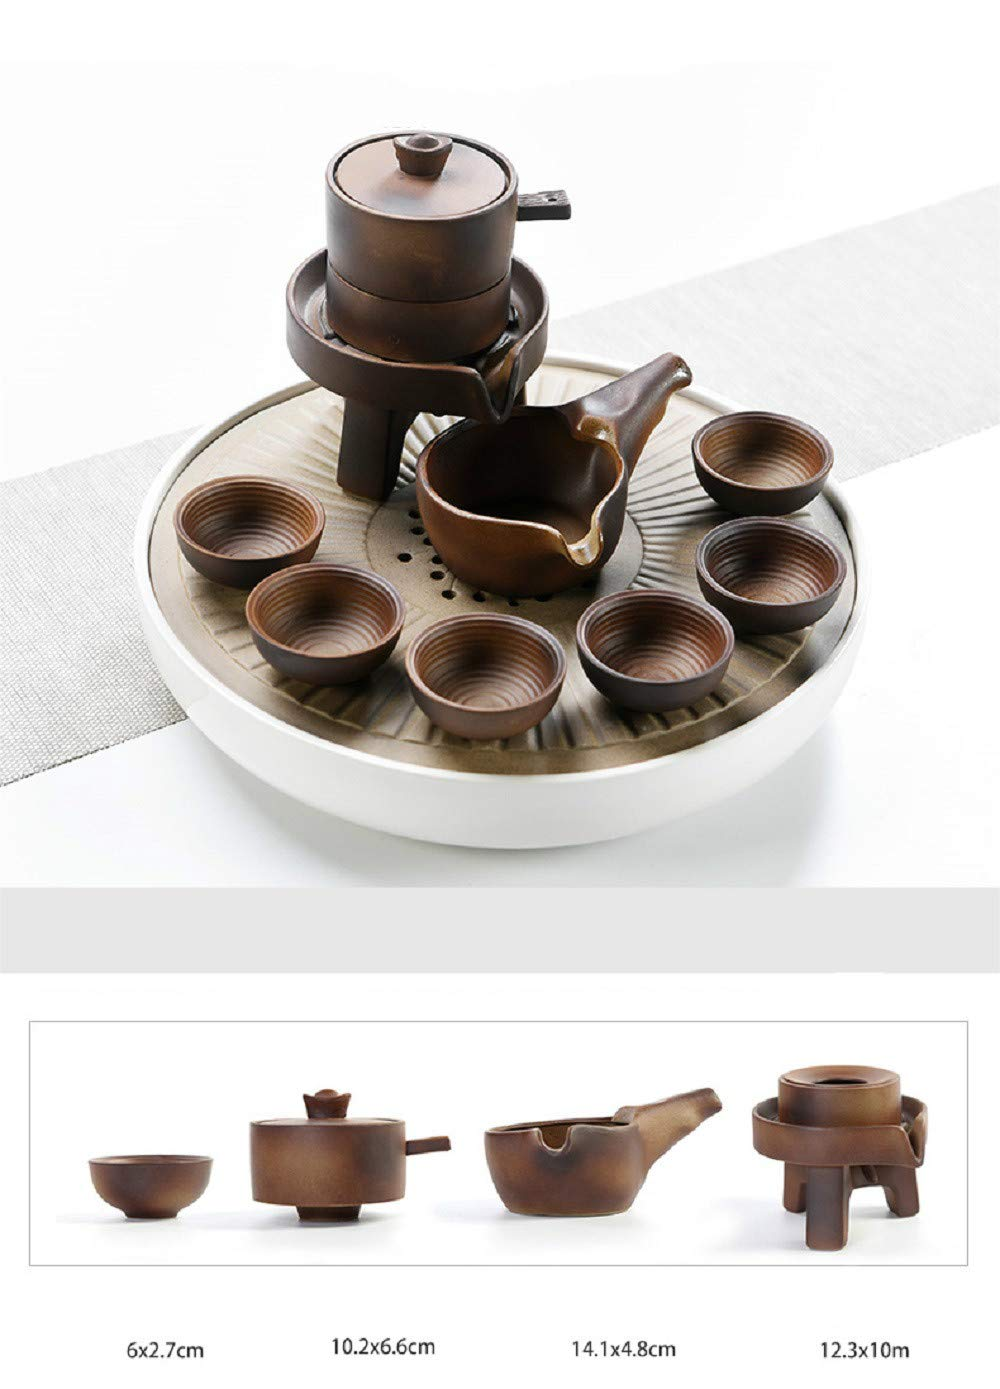 Chuangrong Chinese Gift Tea Service Ceramic Firewood Coarse Pottery Automatic Handmade Porcelain Kongfu Hot Tea Set of 13 Gift Box for Business Friend Adult Men